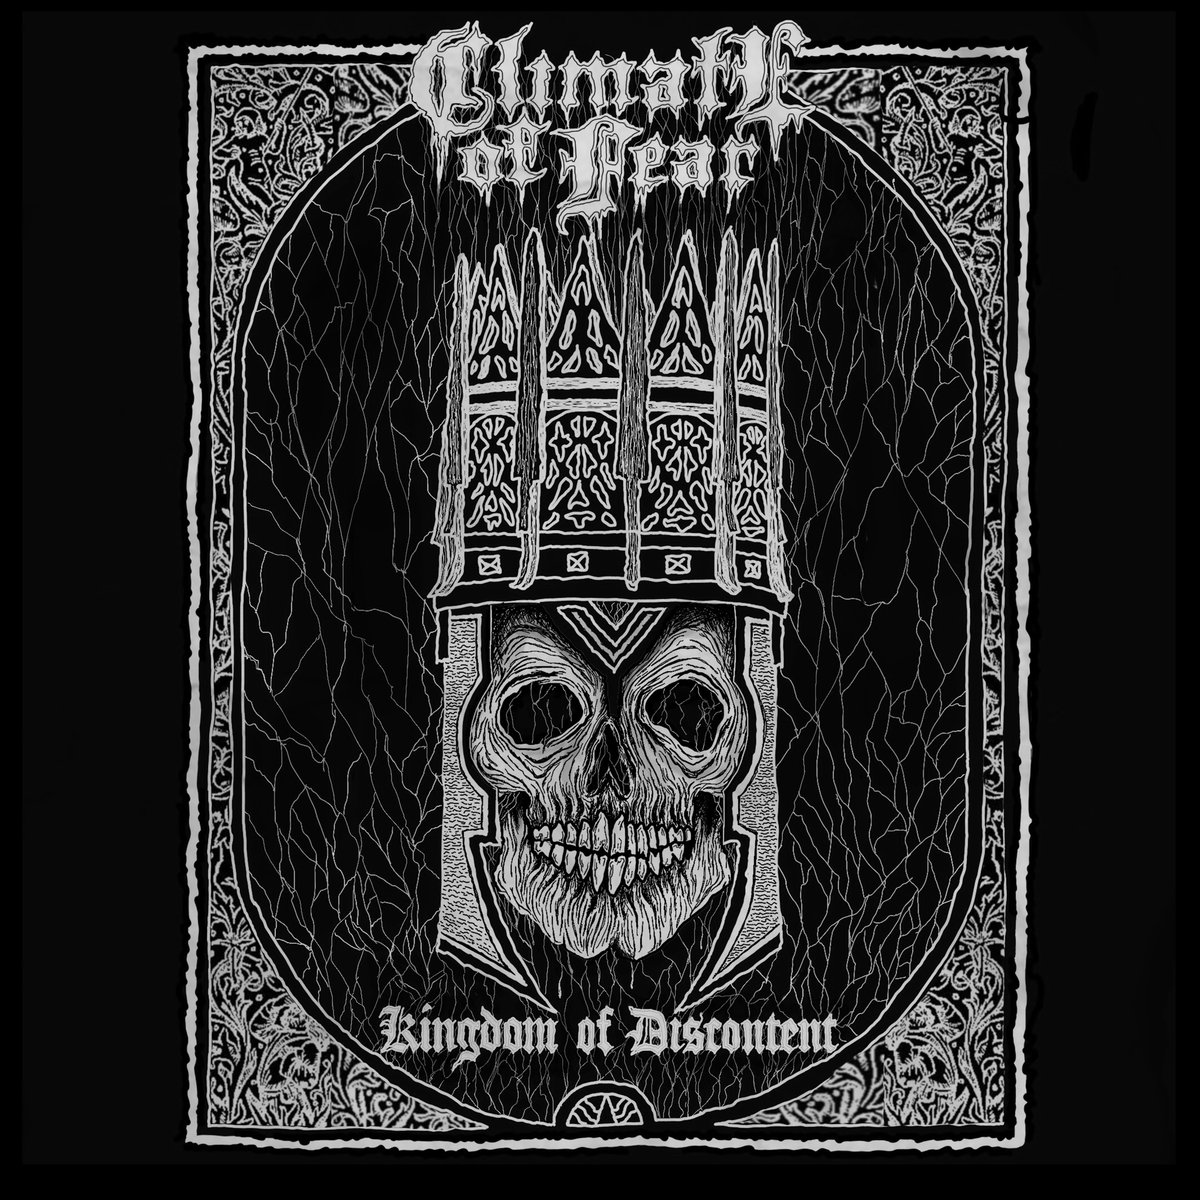 Climate Of Fear - Kingdom of Discontent